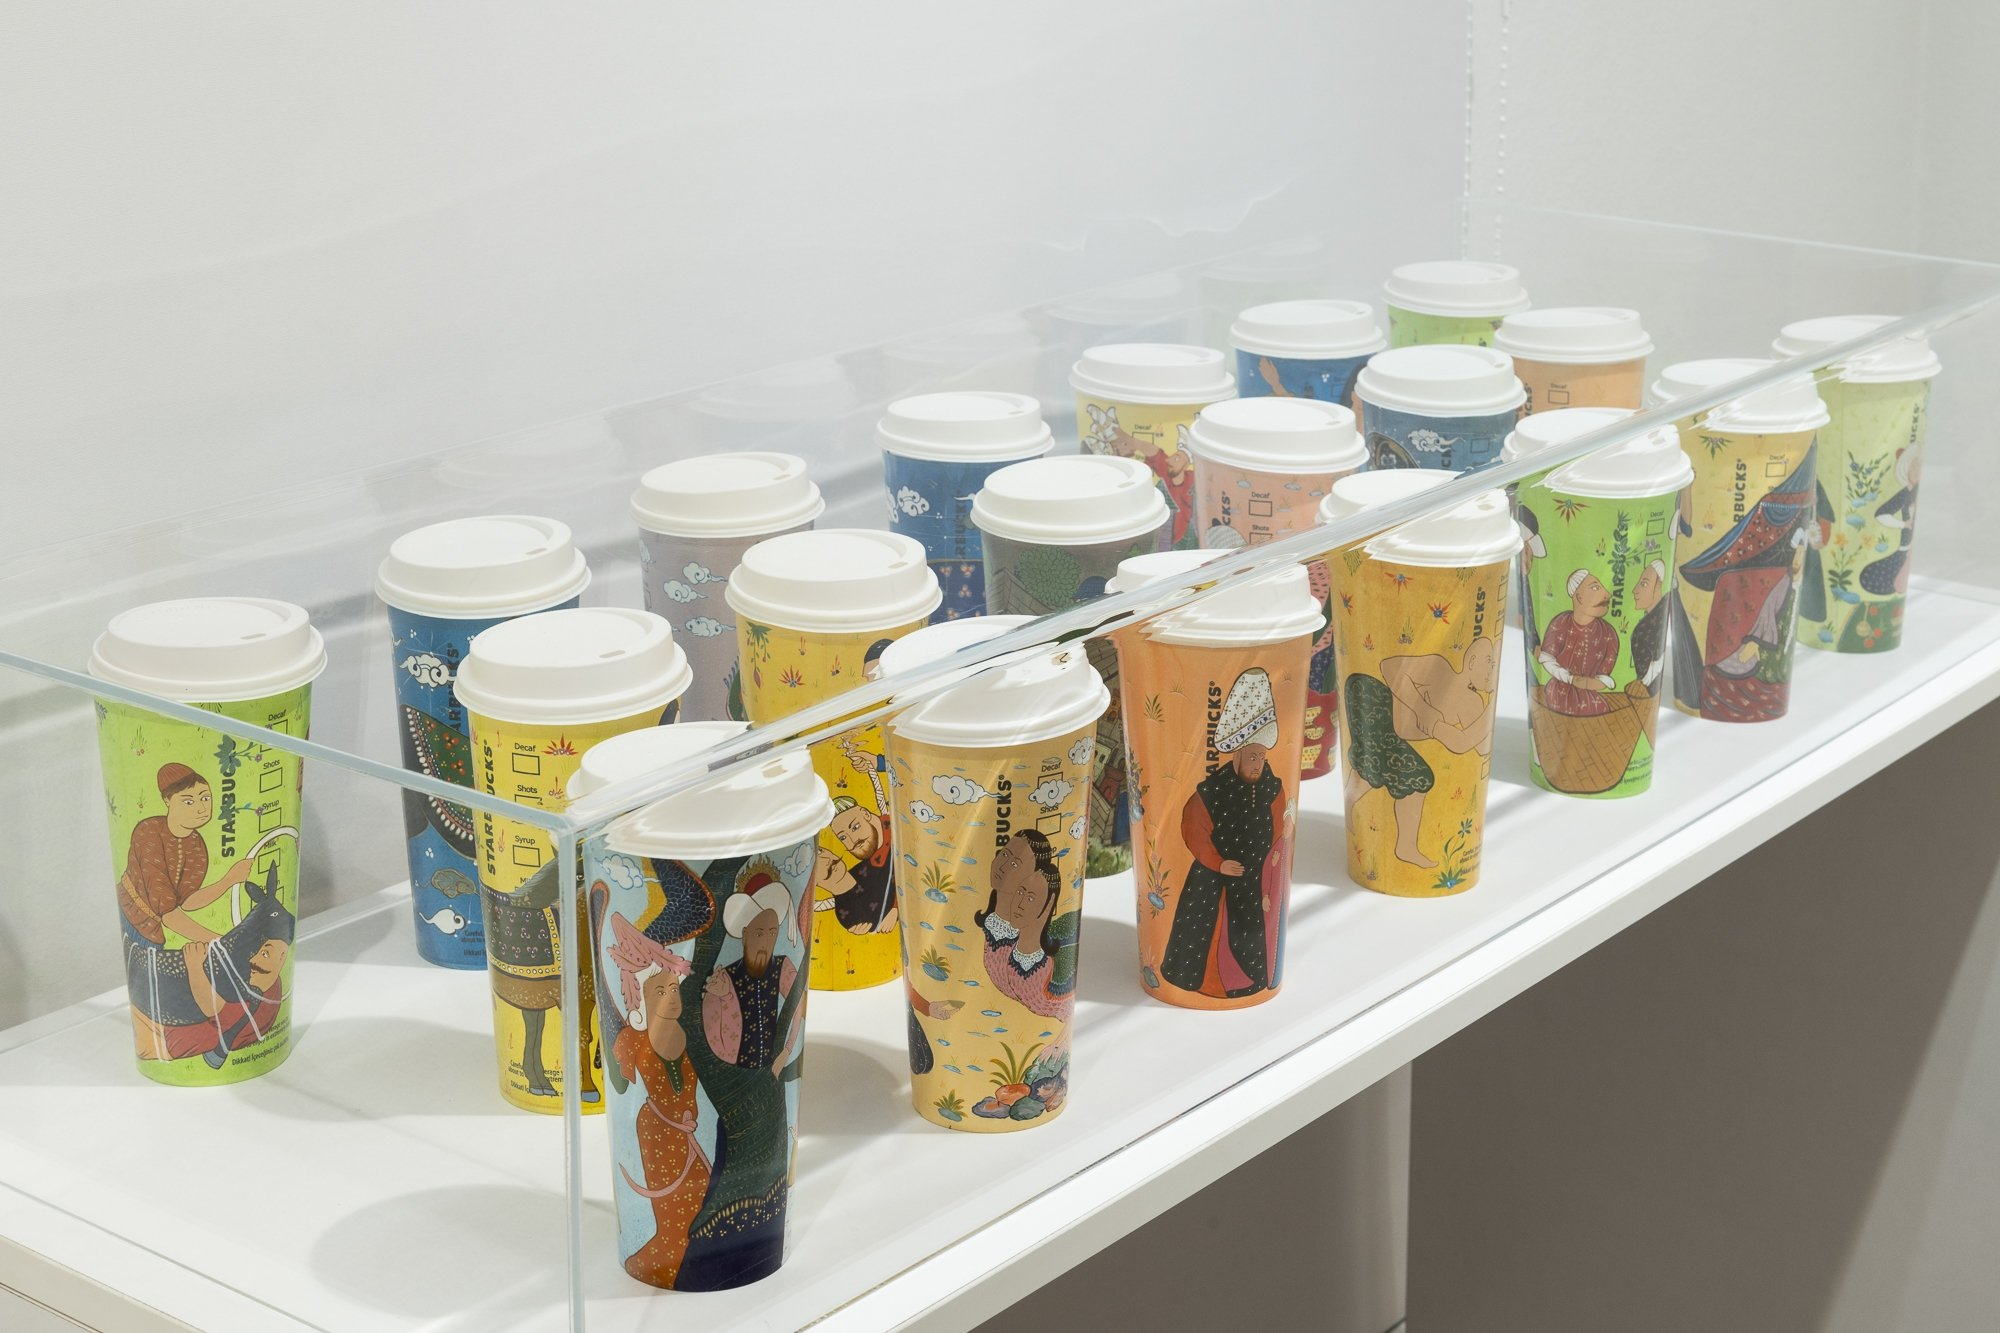 Some miniatures on Starbucks cups by Onur Hastürk, from the